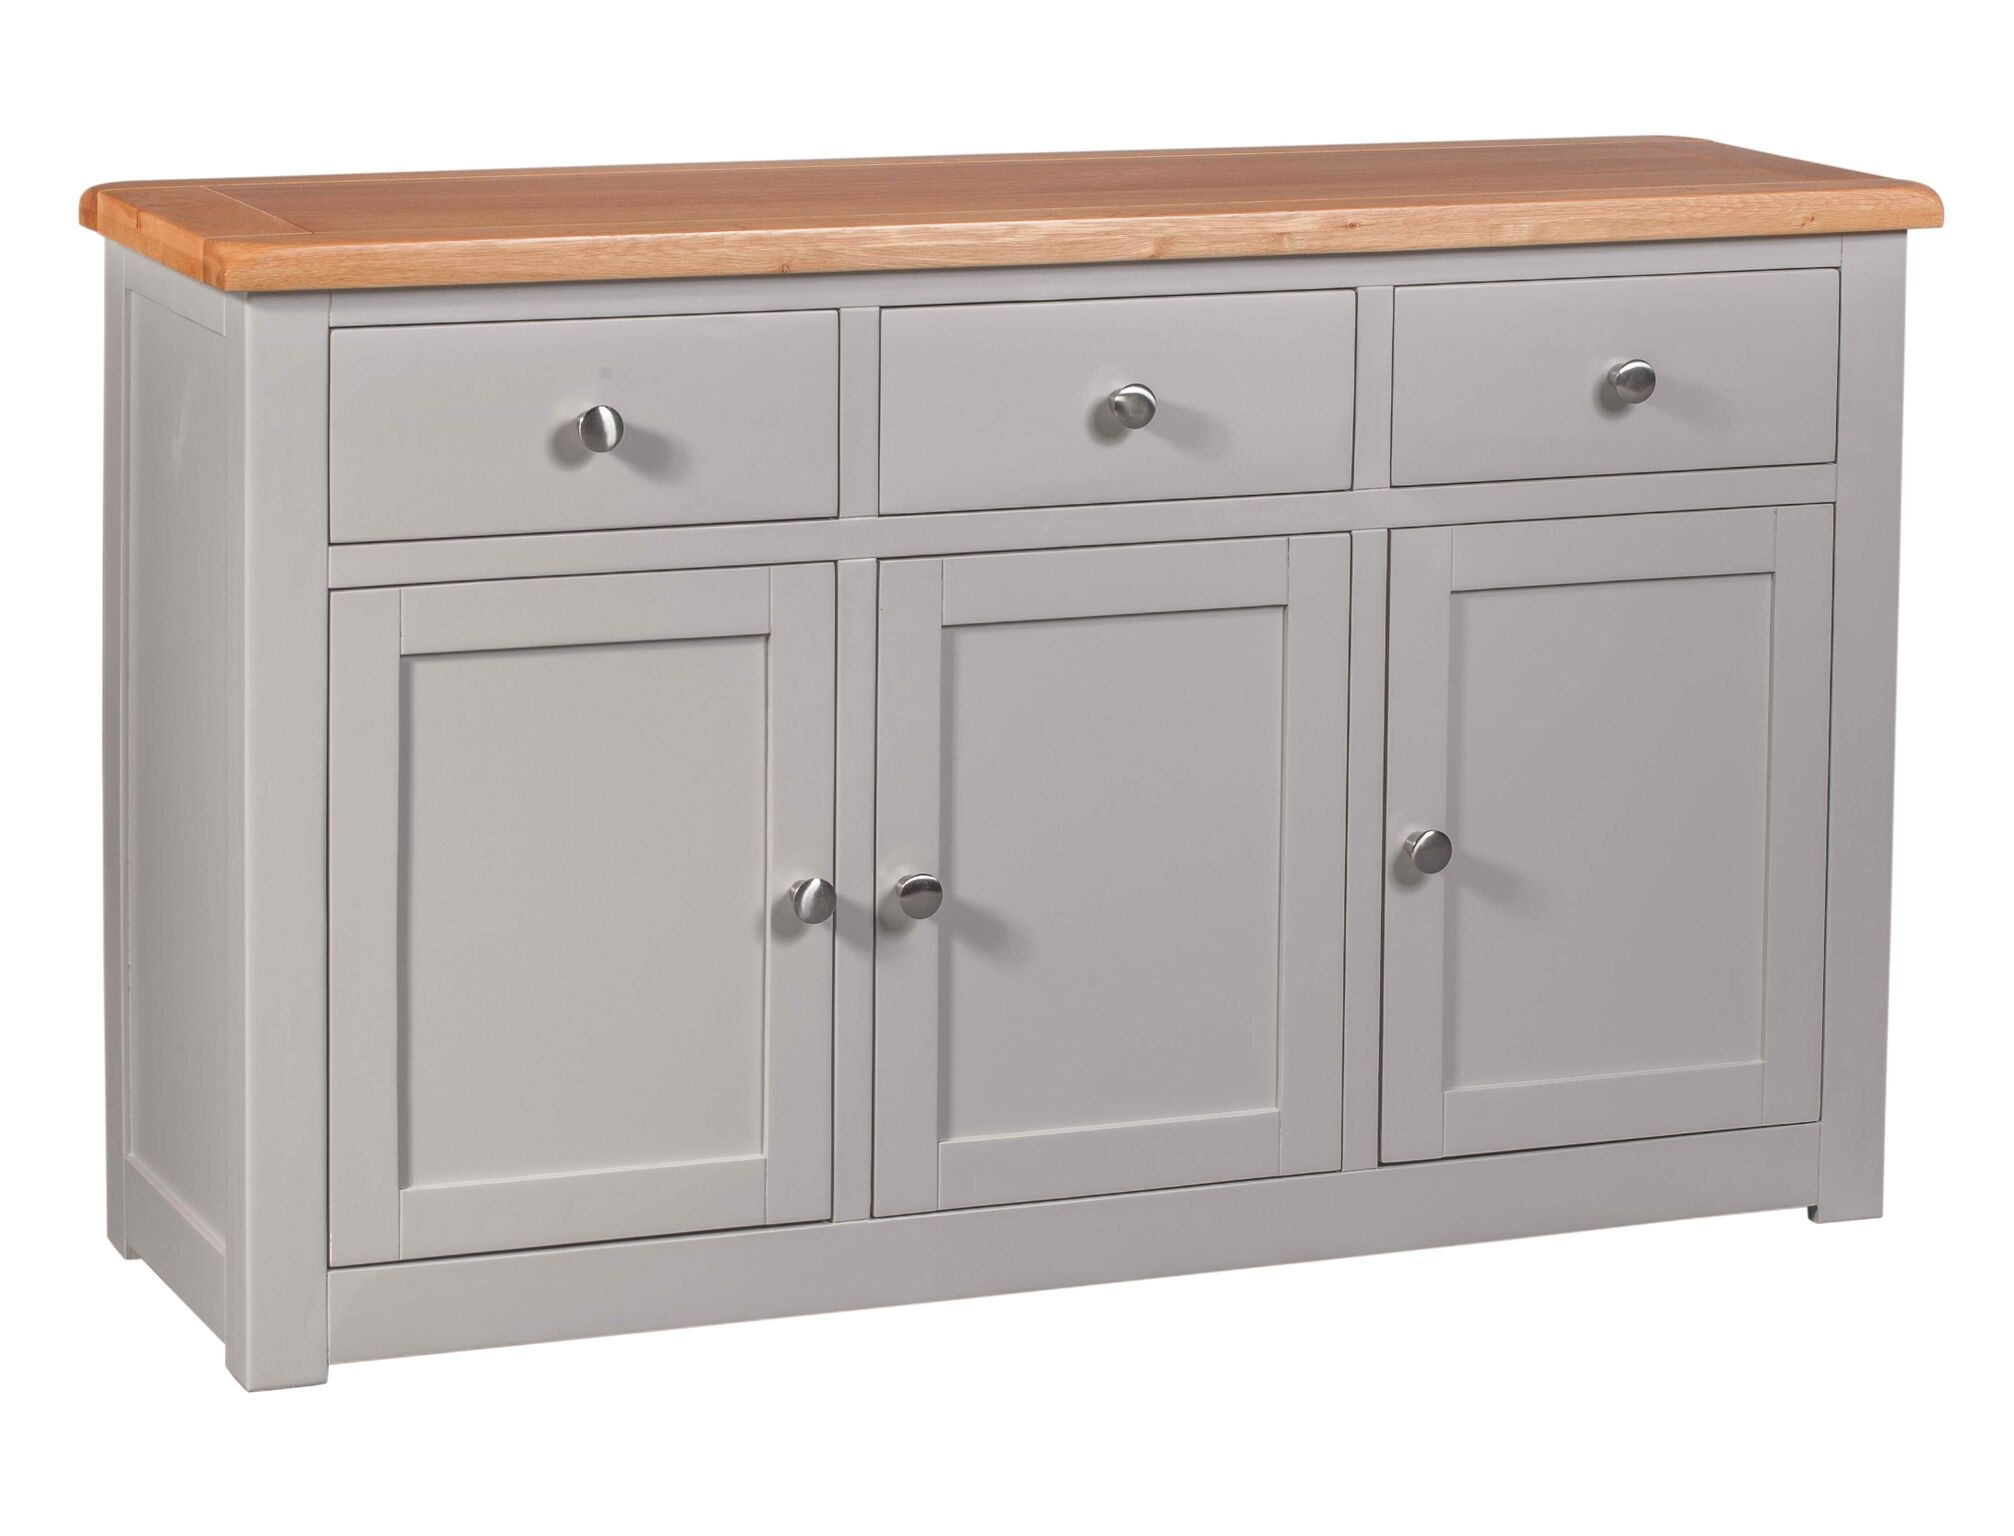 Painted Sideboards - Modern Dining With Norwich Furniture in Logan Sideboards (Image 20 of 30)